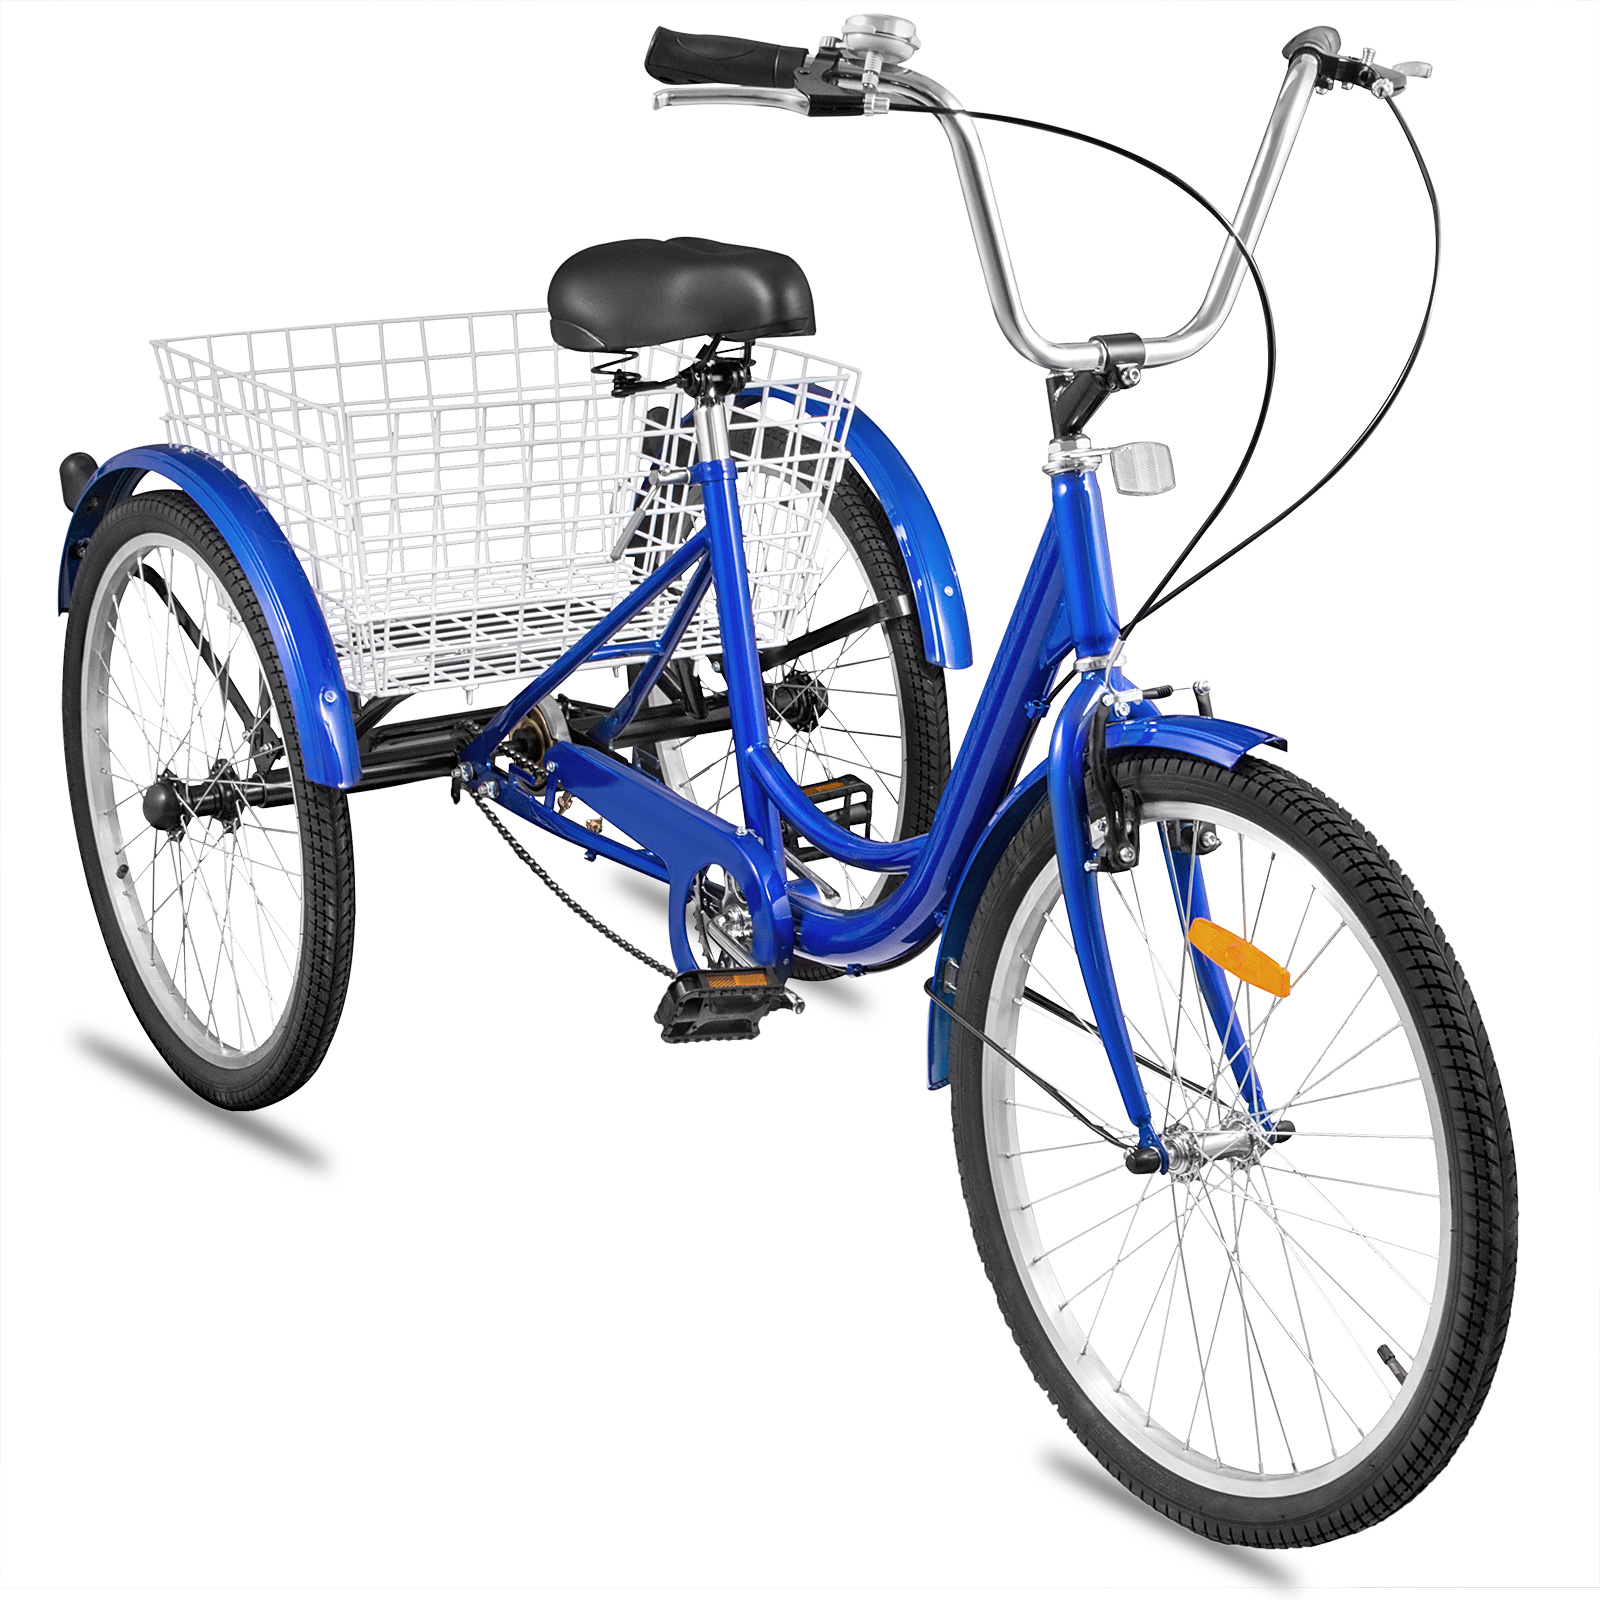 20-24-26-034-Adult-Tricycle-1-7-Speed-3-Wheel-Large-Basket-For-Shopping-Optional thumbnail 201